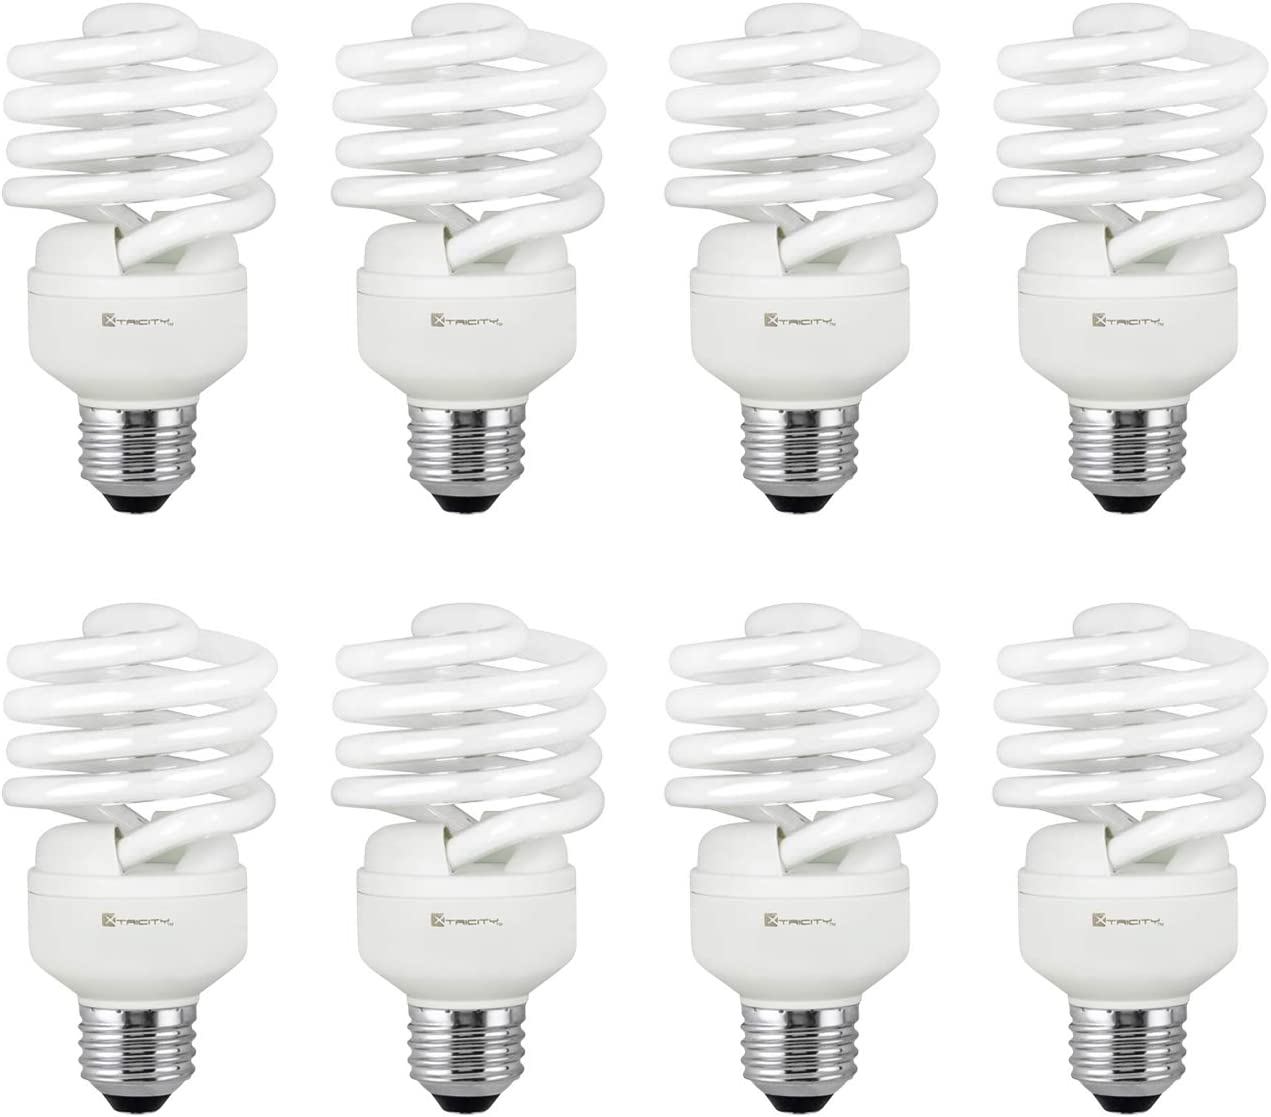 Compact Fluorescent Light Bulb T2 Spiral CFL, 5000k Daylight, 23W (100 Watt Equivalent), 1520 Lumens, E26 Medium Base, 120V, UL Listed (Pack of 8)